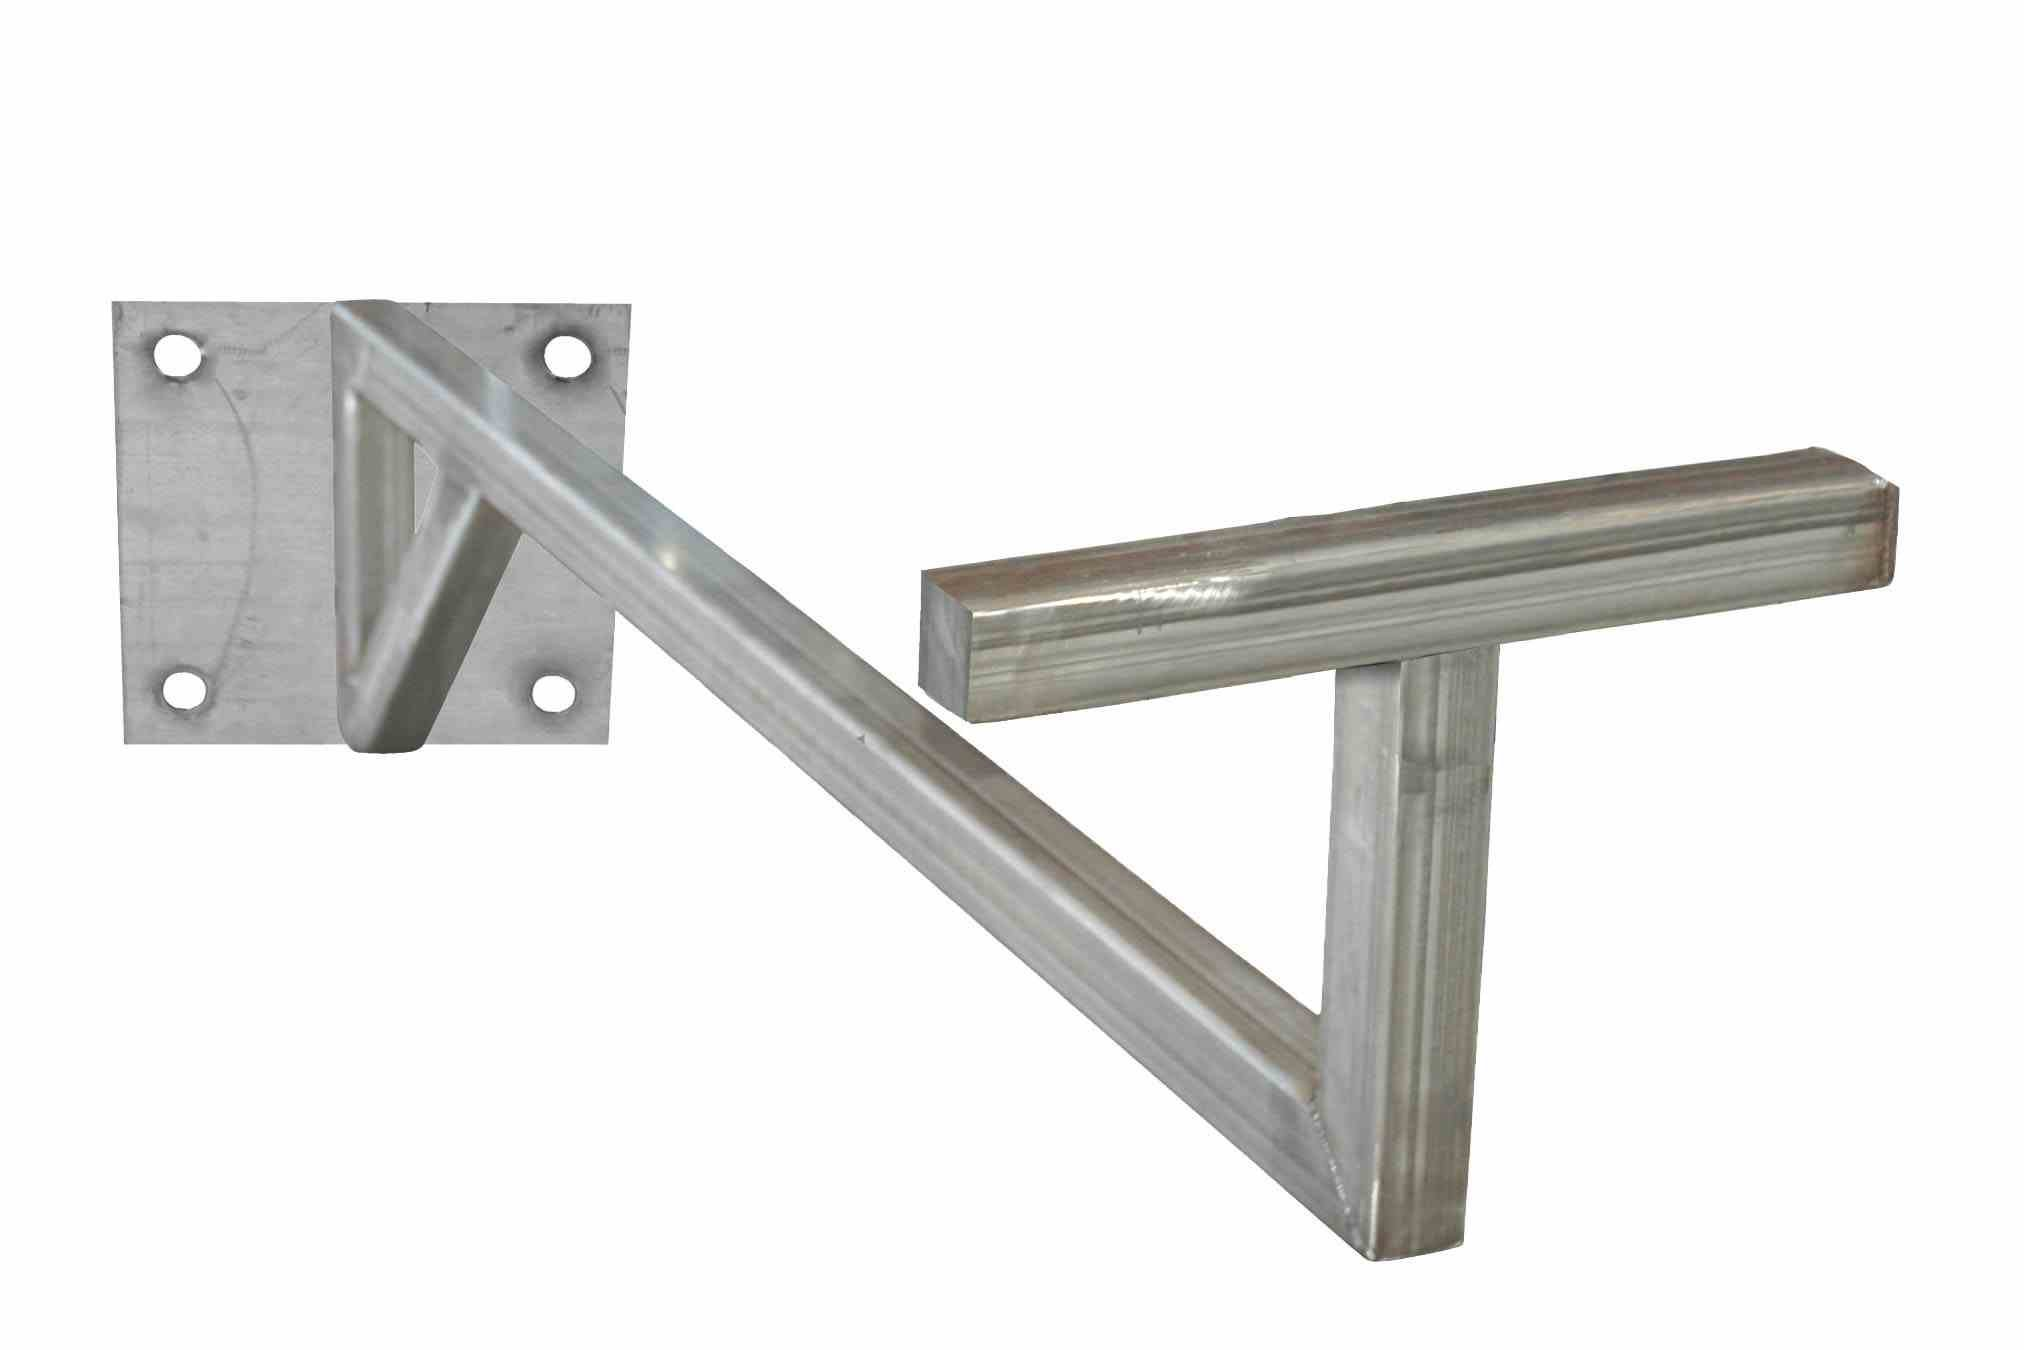 8 Foot Carbon Steel Swing Arm - Mount Lights, Cables, or Equipment - 96'' Extension - Pivots